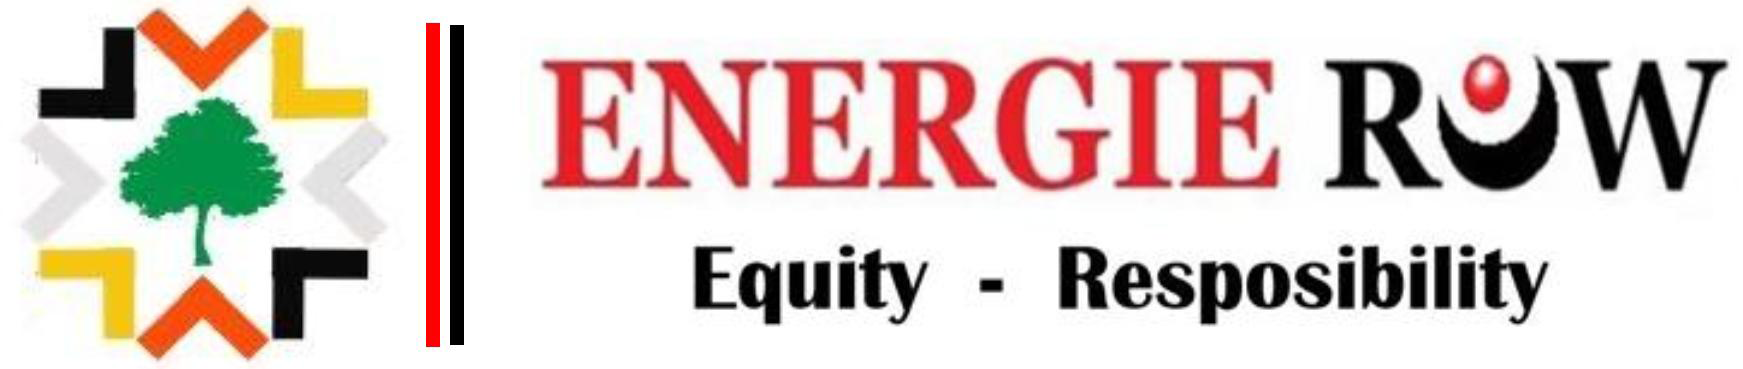 Energie Row - Equity - Responsibility